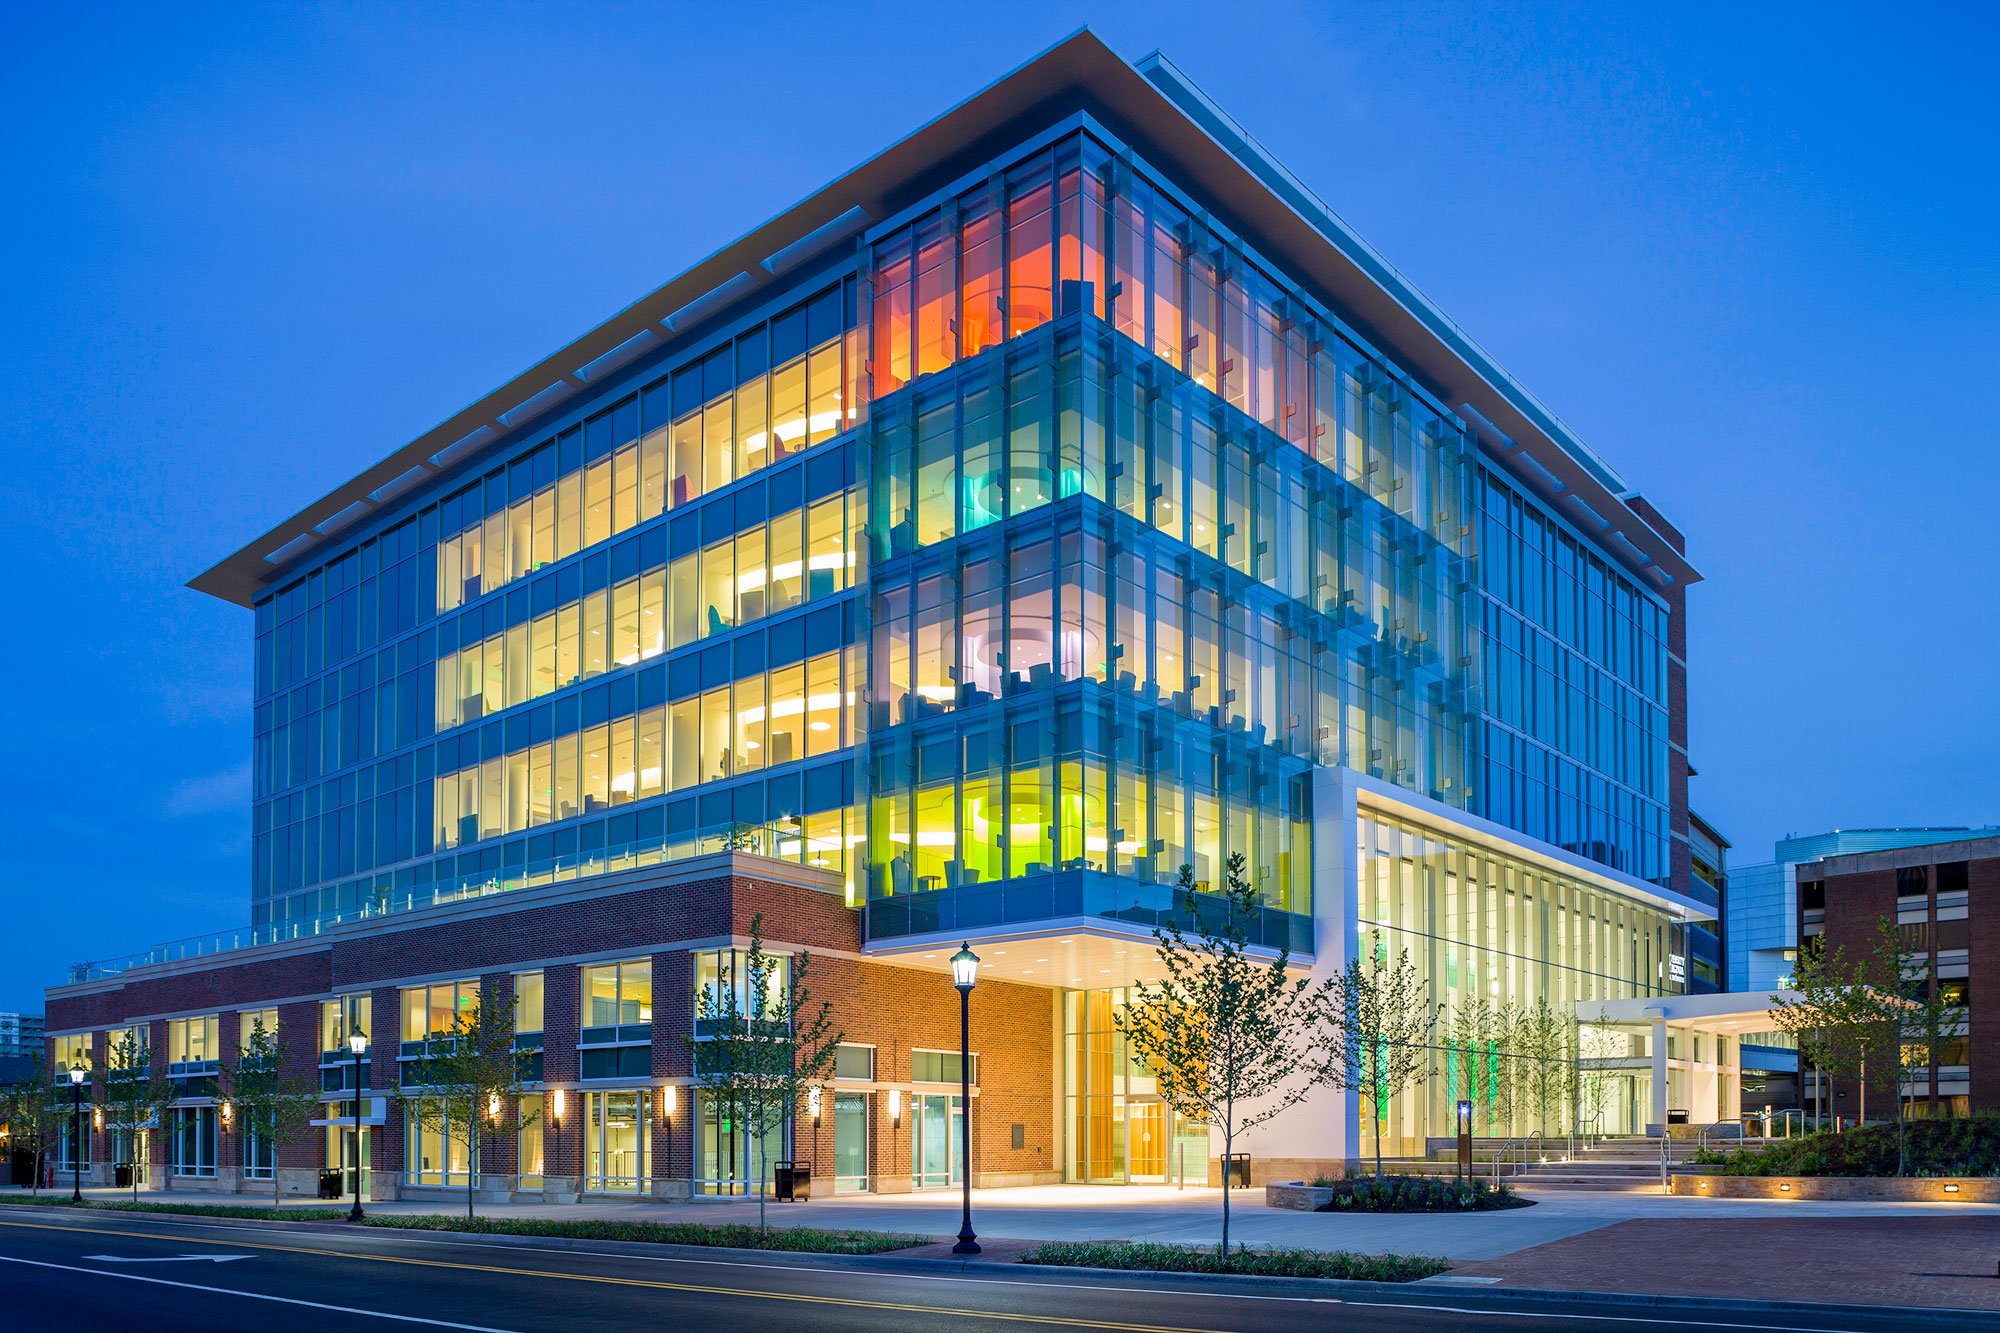 UVA Health System - Odell Architecture